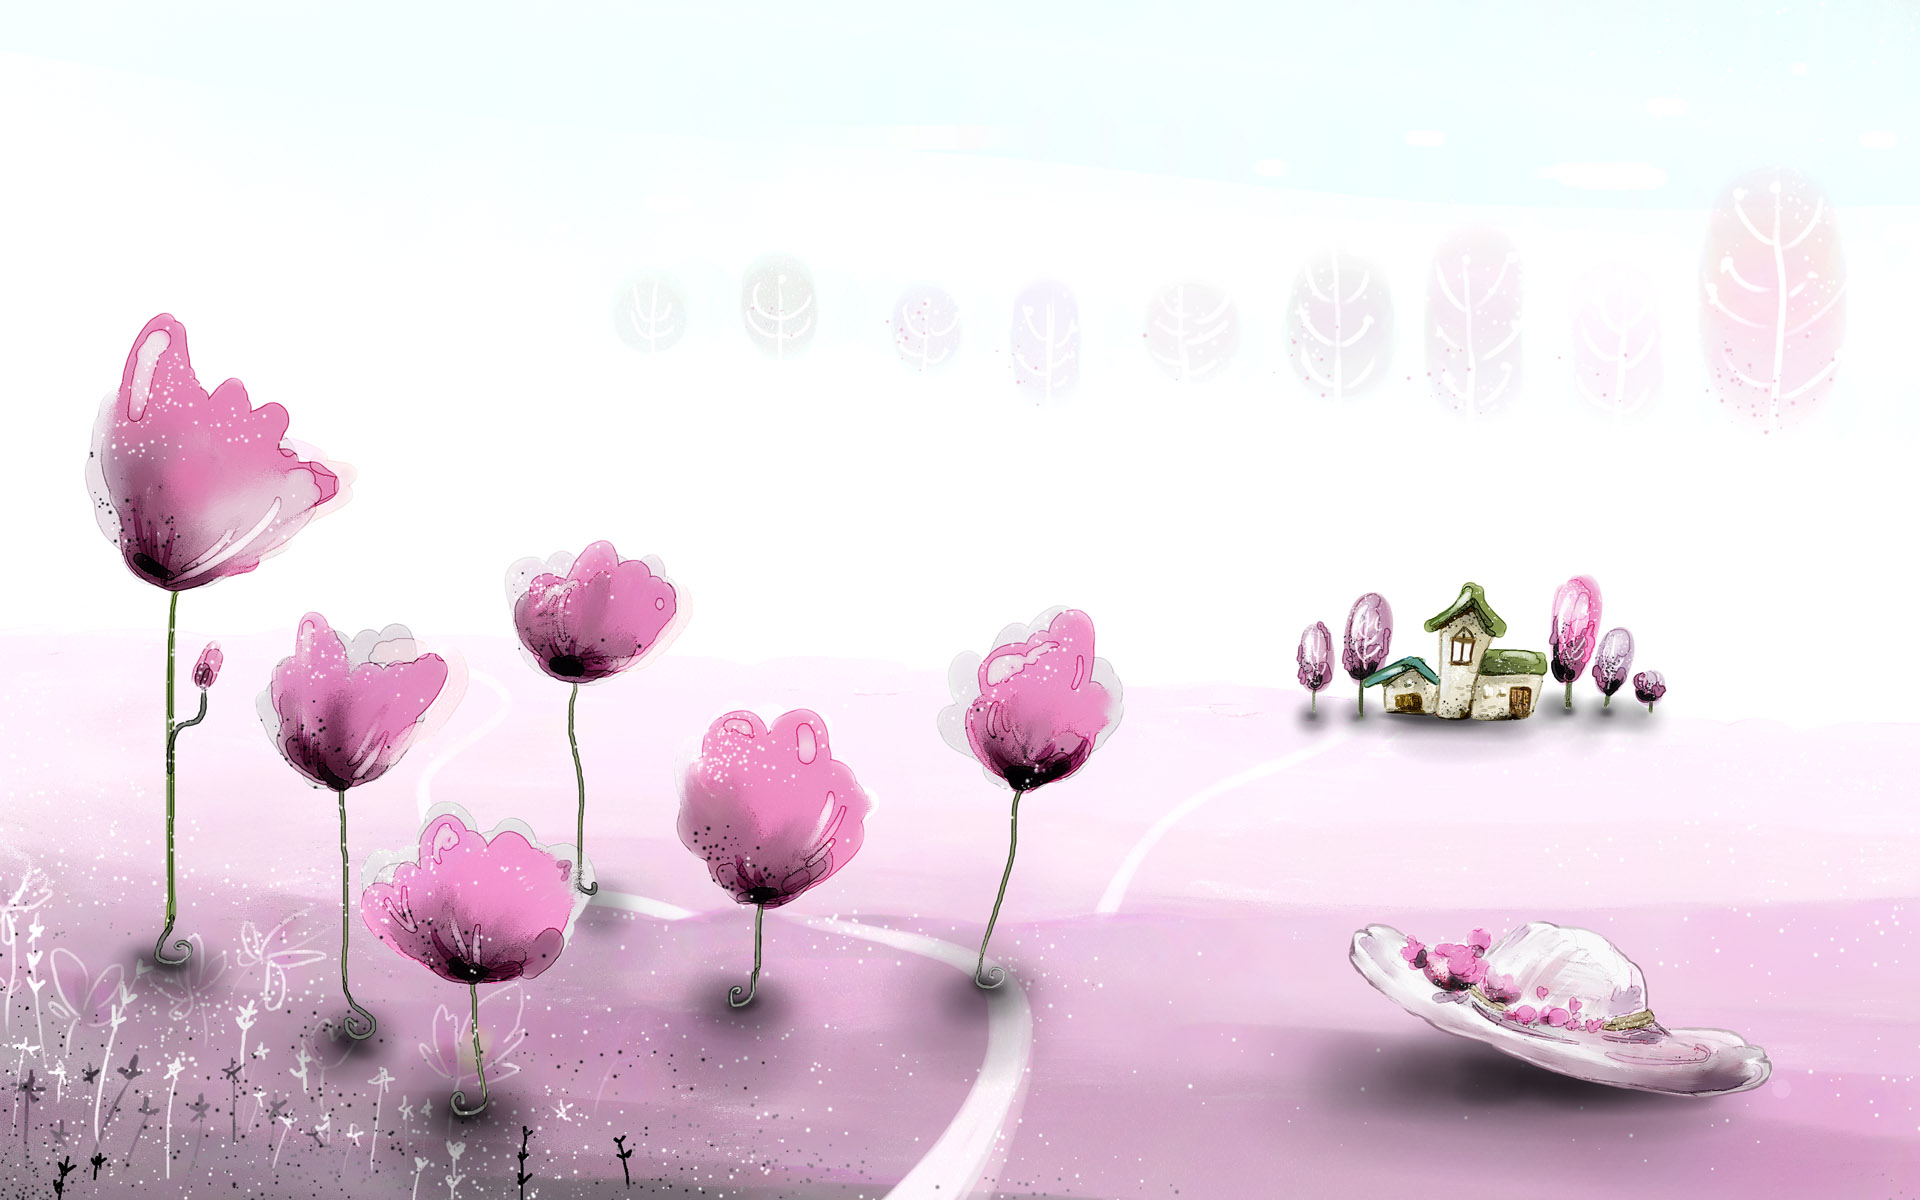 wallpaper cute allimg picture 1920x1200